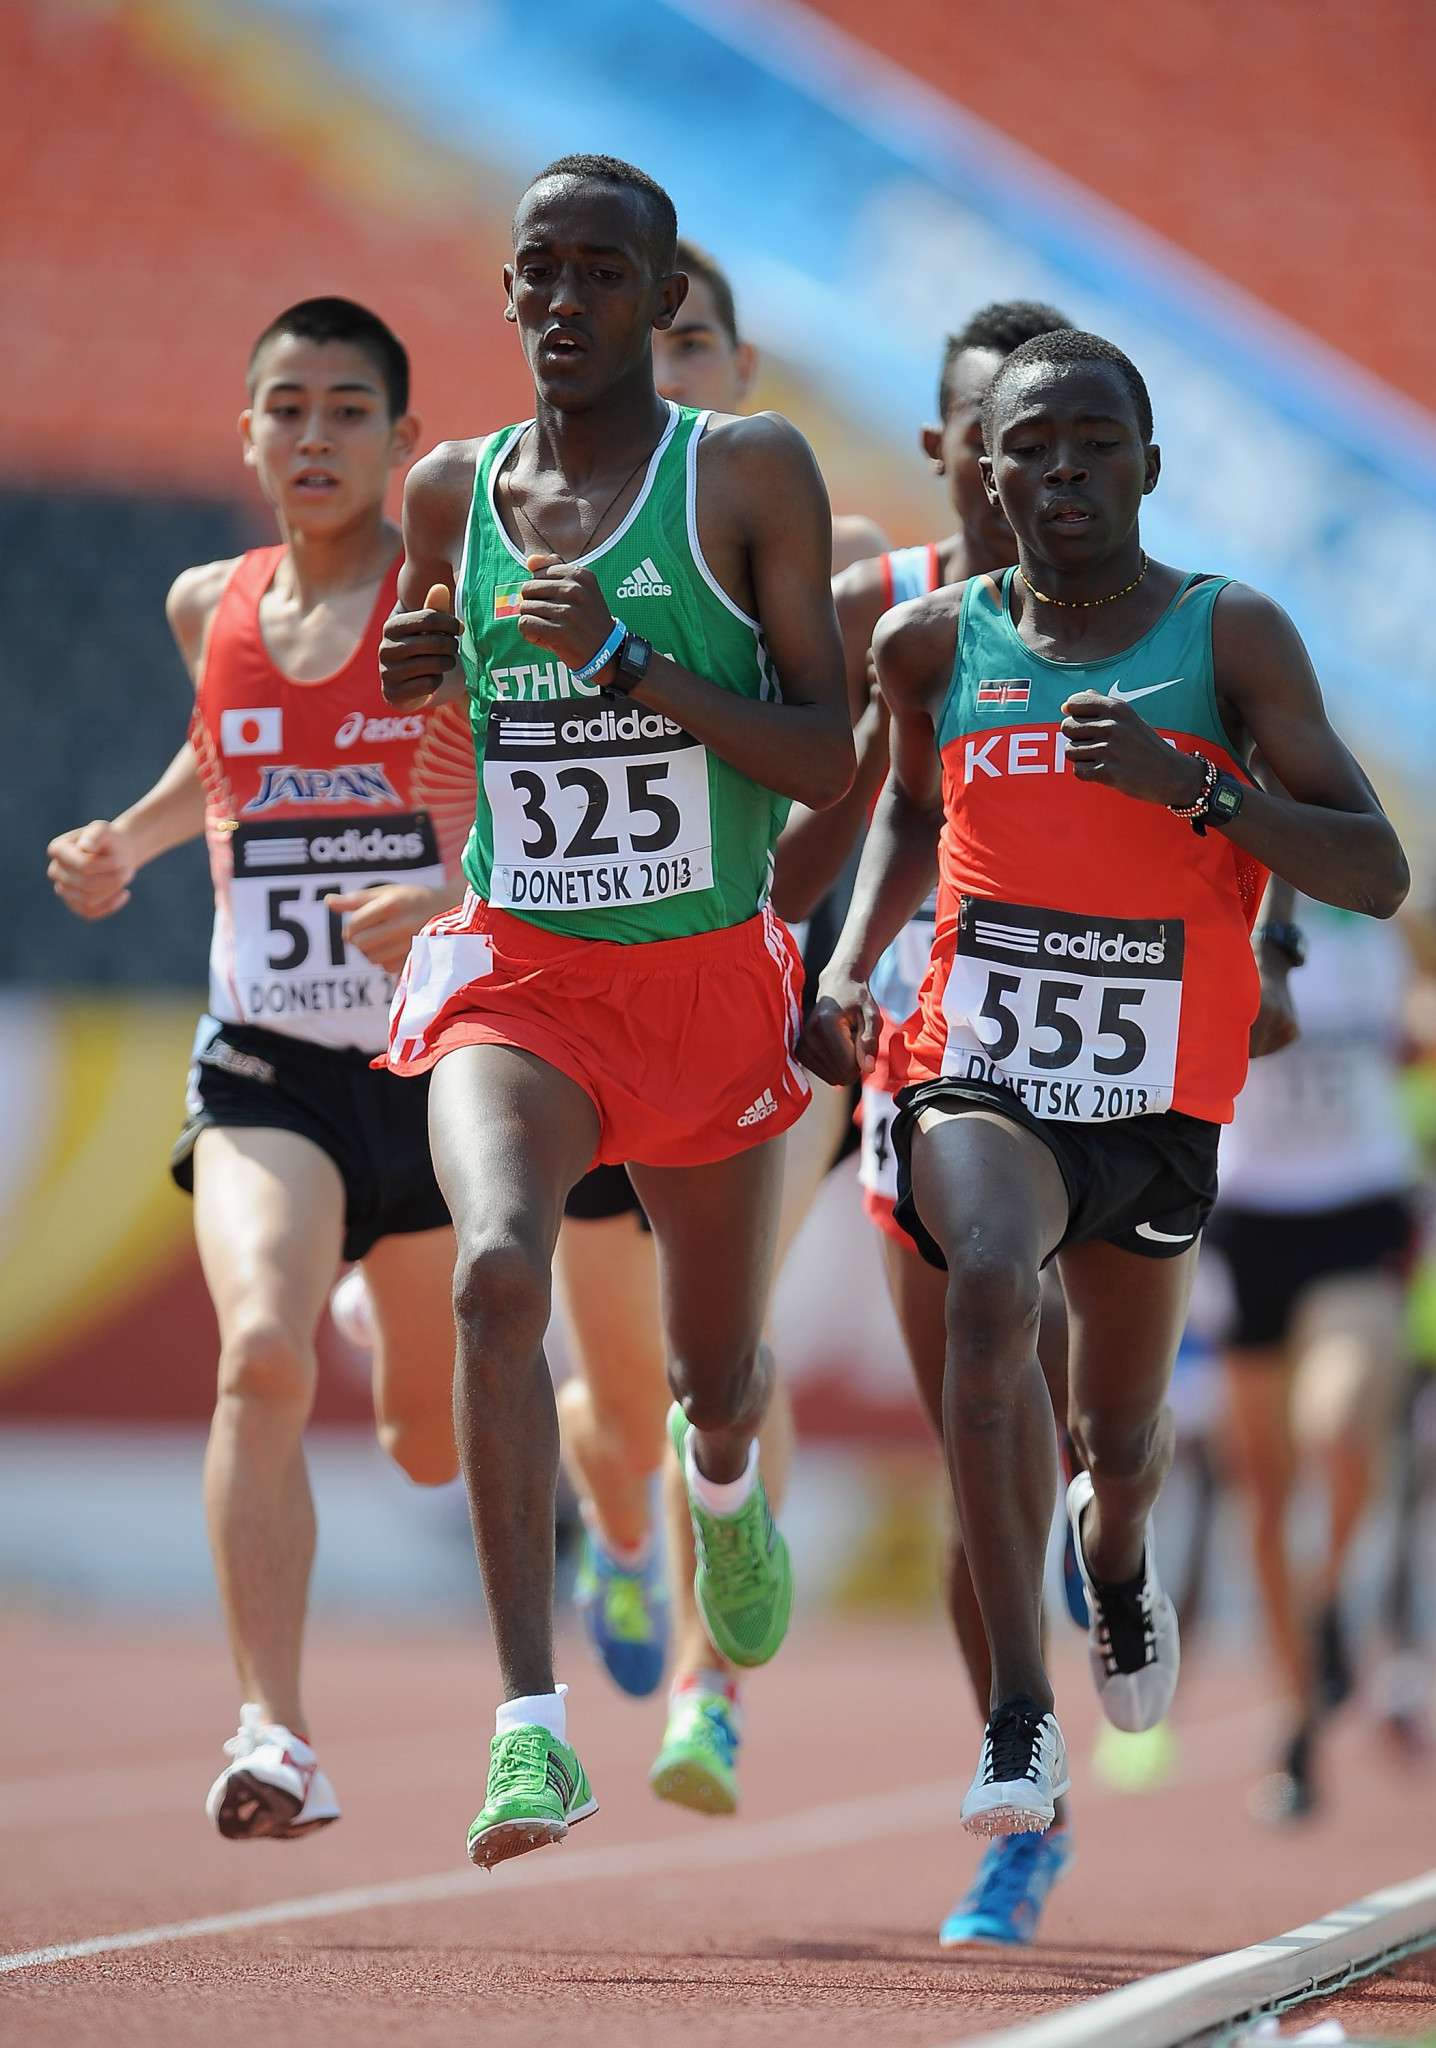 Tuemay and Tesfay secure Ethiopian double at World Athletics Cross Country Permit in Campaccio